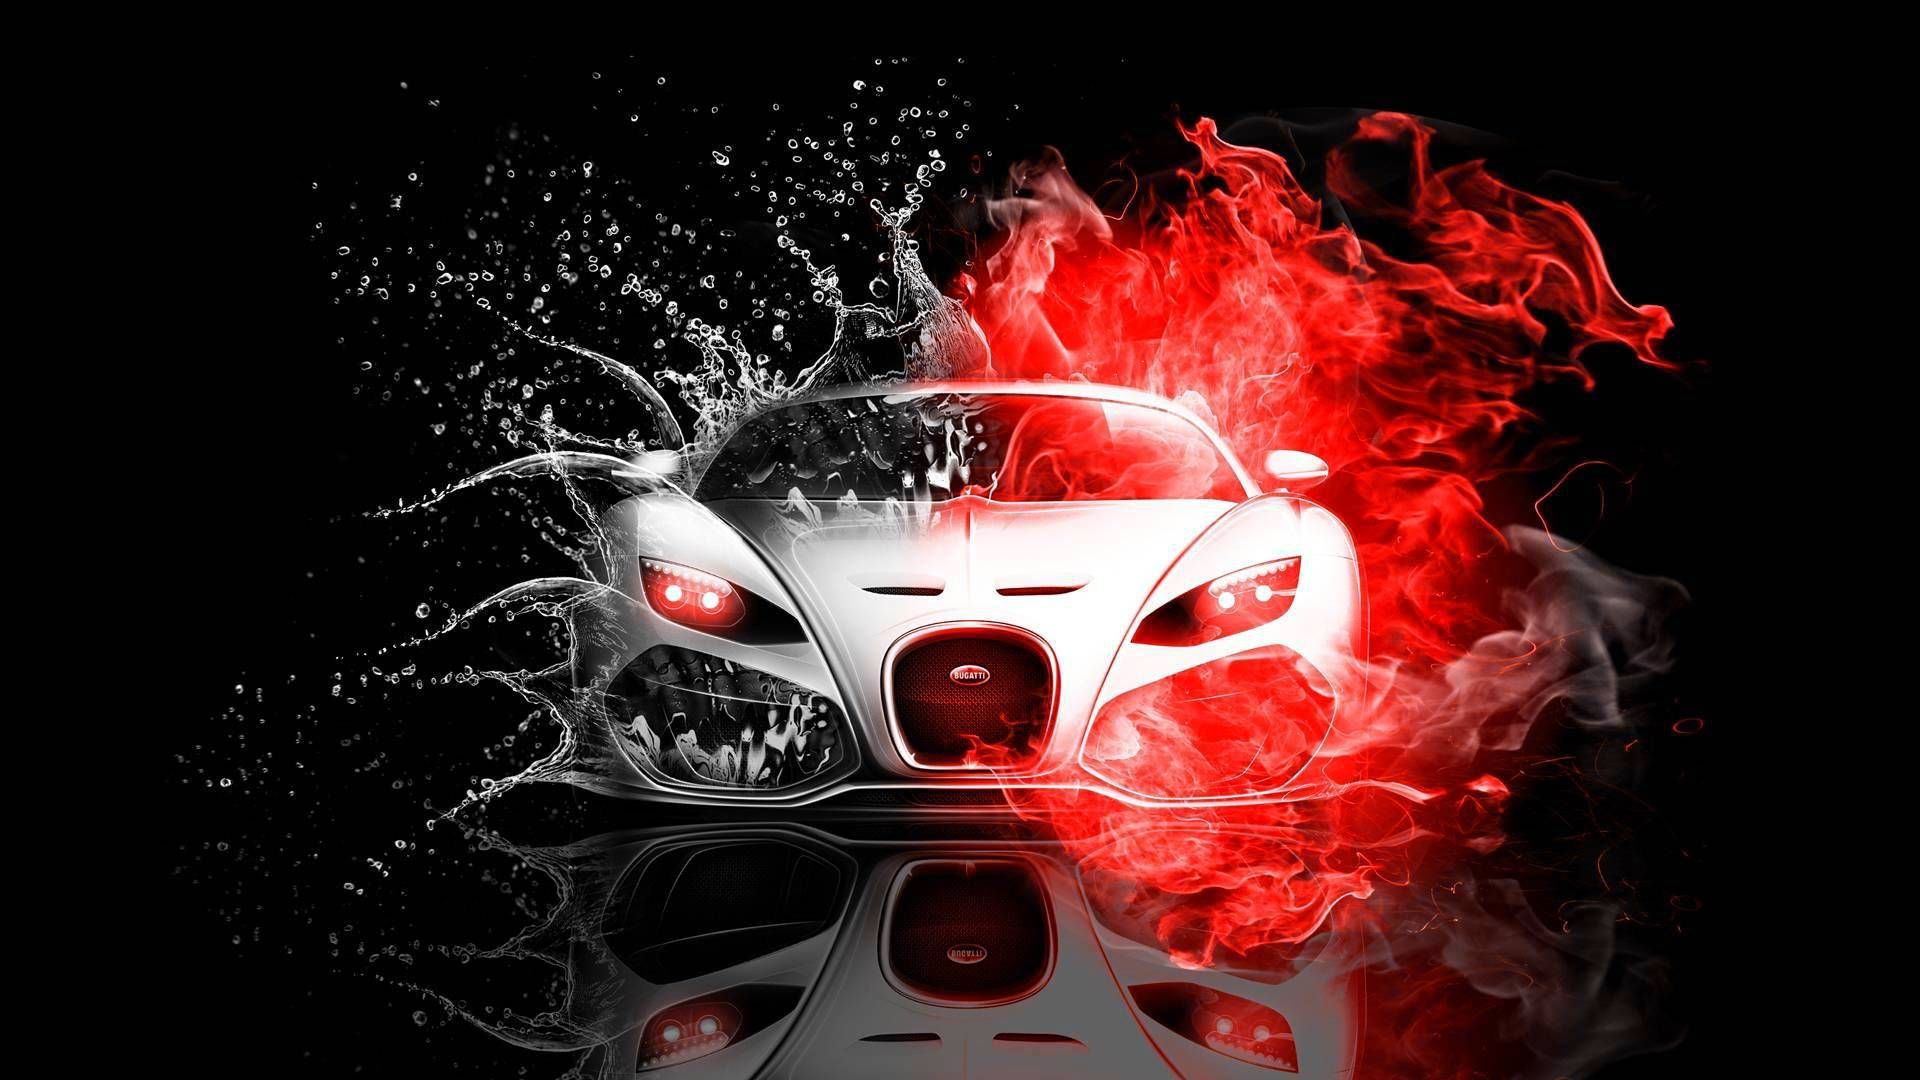 Http Wallpapercave Com Wp Hsy2fif Jpg Car Backgrounds Bugatti